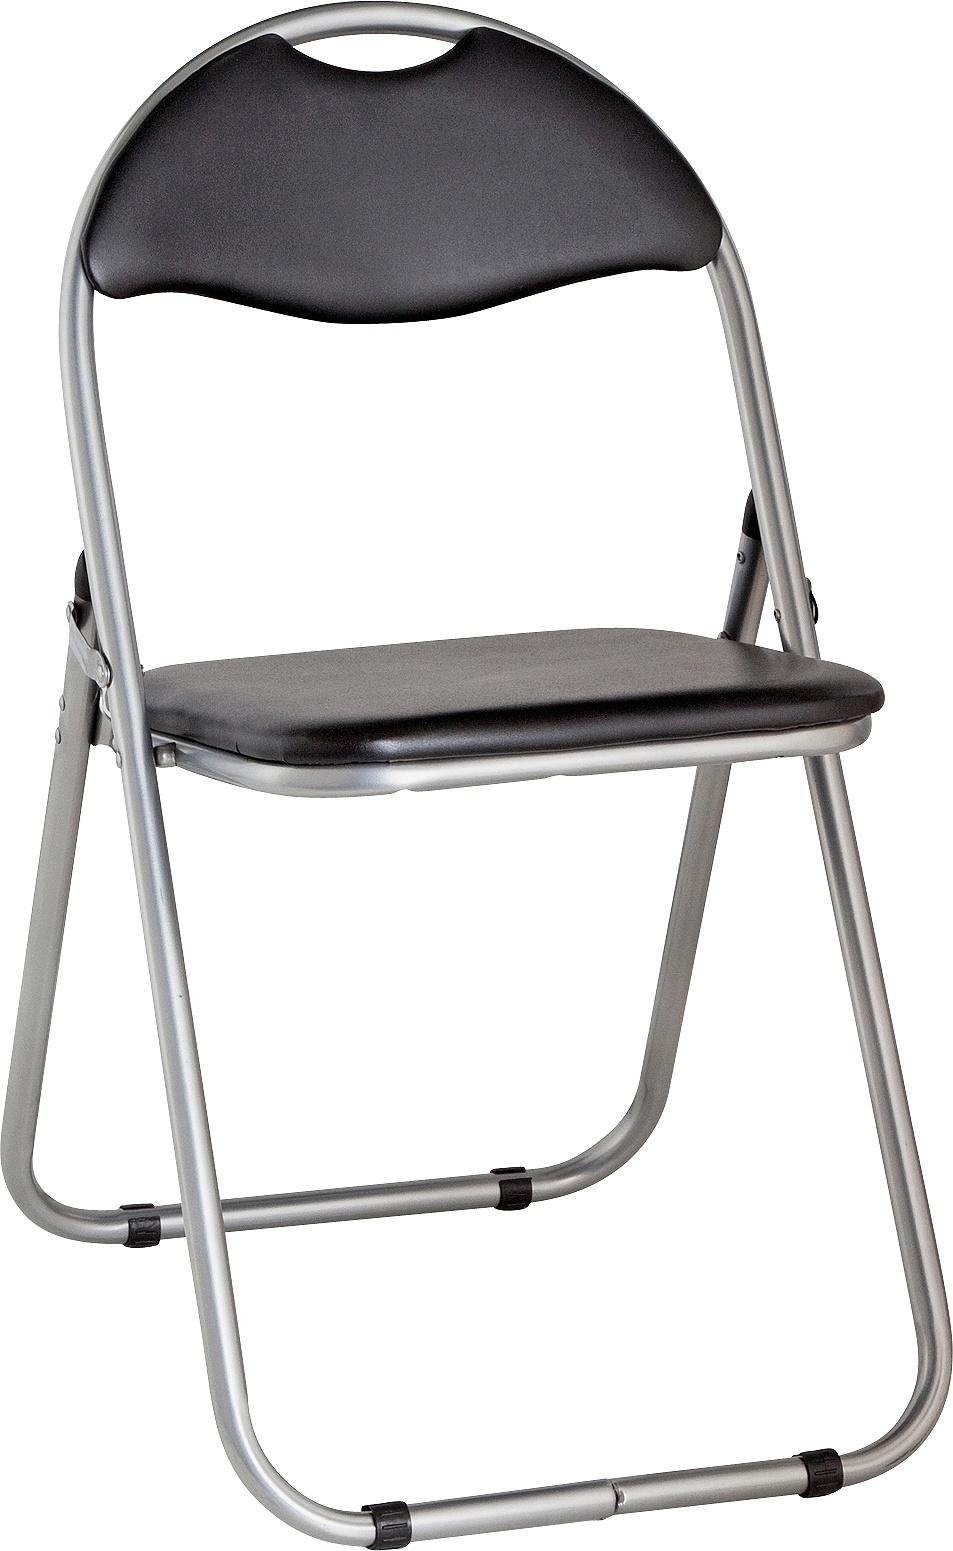 buy padded folding office chair - black at argos.co.uk - your